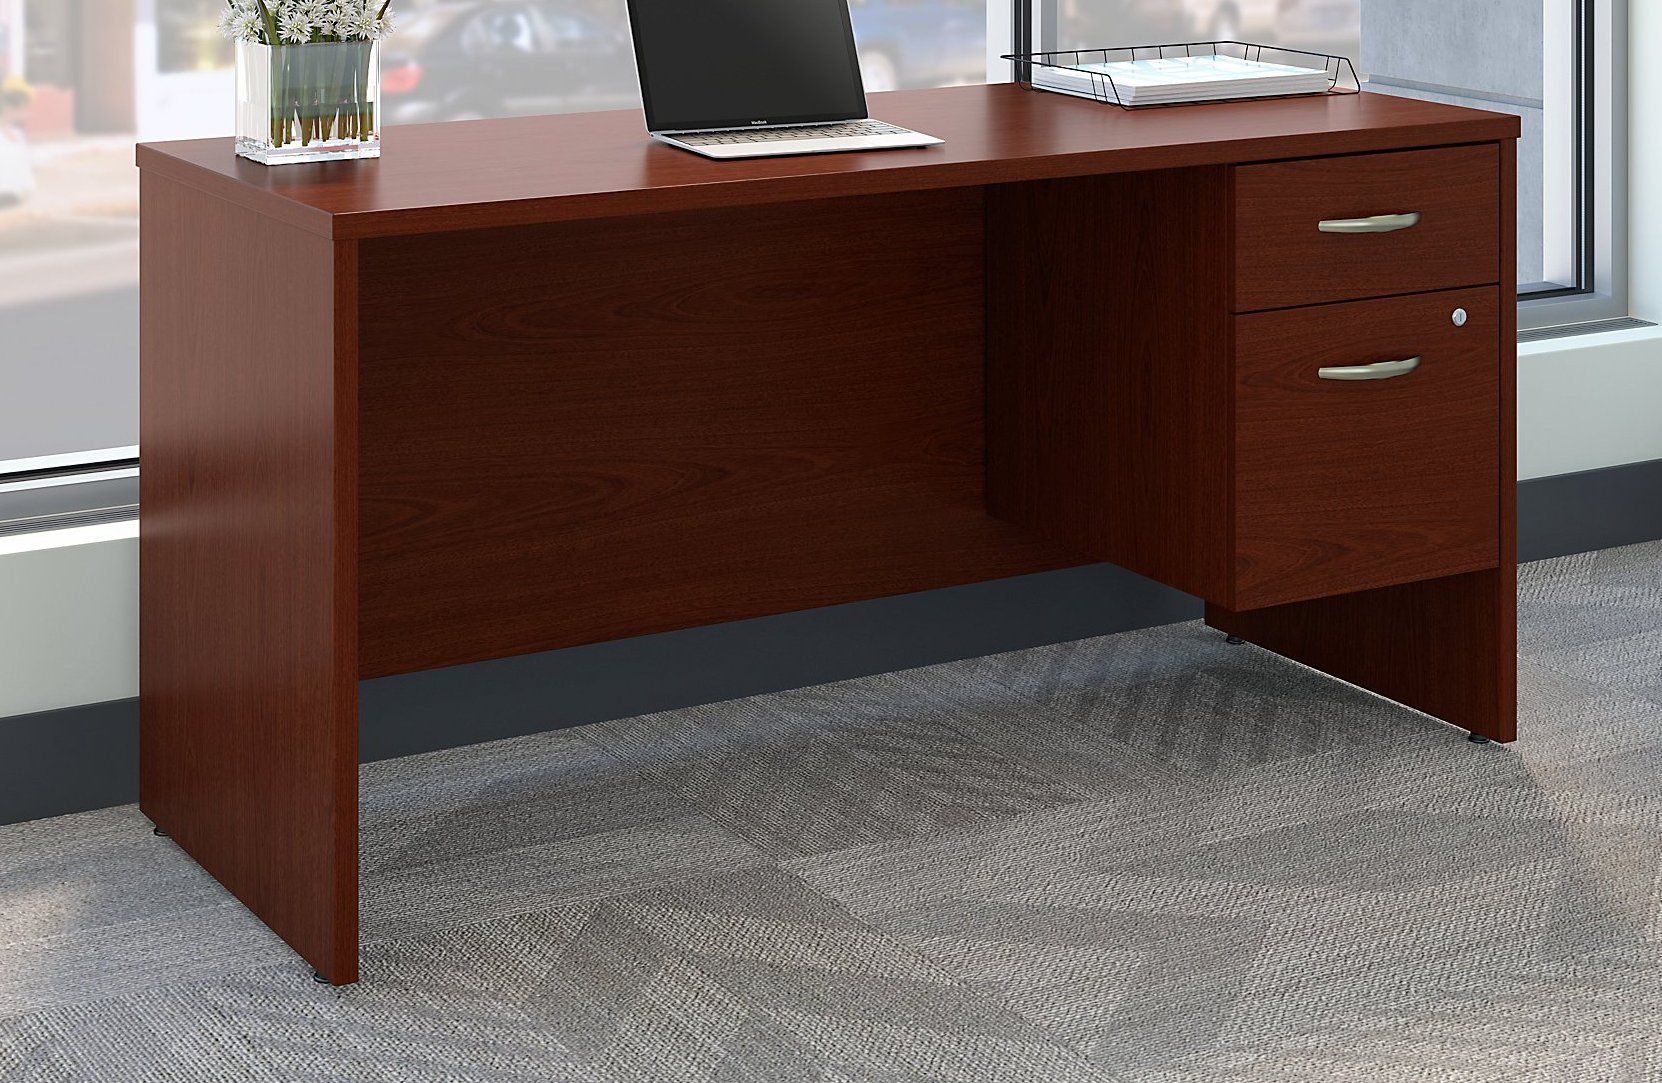 Series C 60W x 24D Office Desk with 3/4 Pedestal in Mahogany by Bush Business Furniture